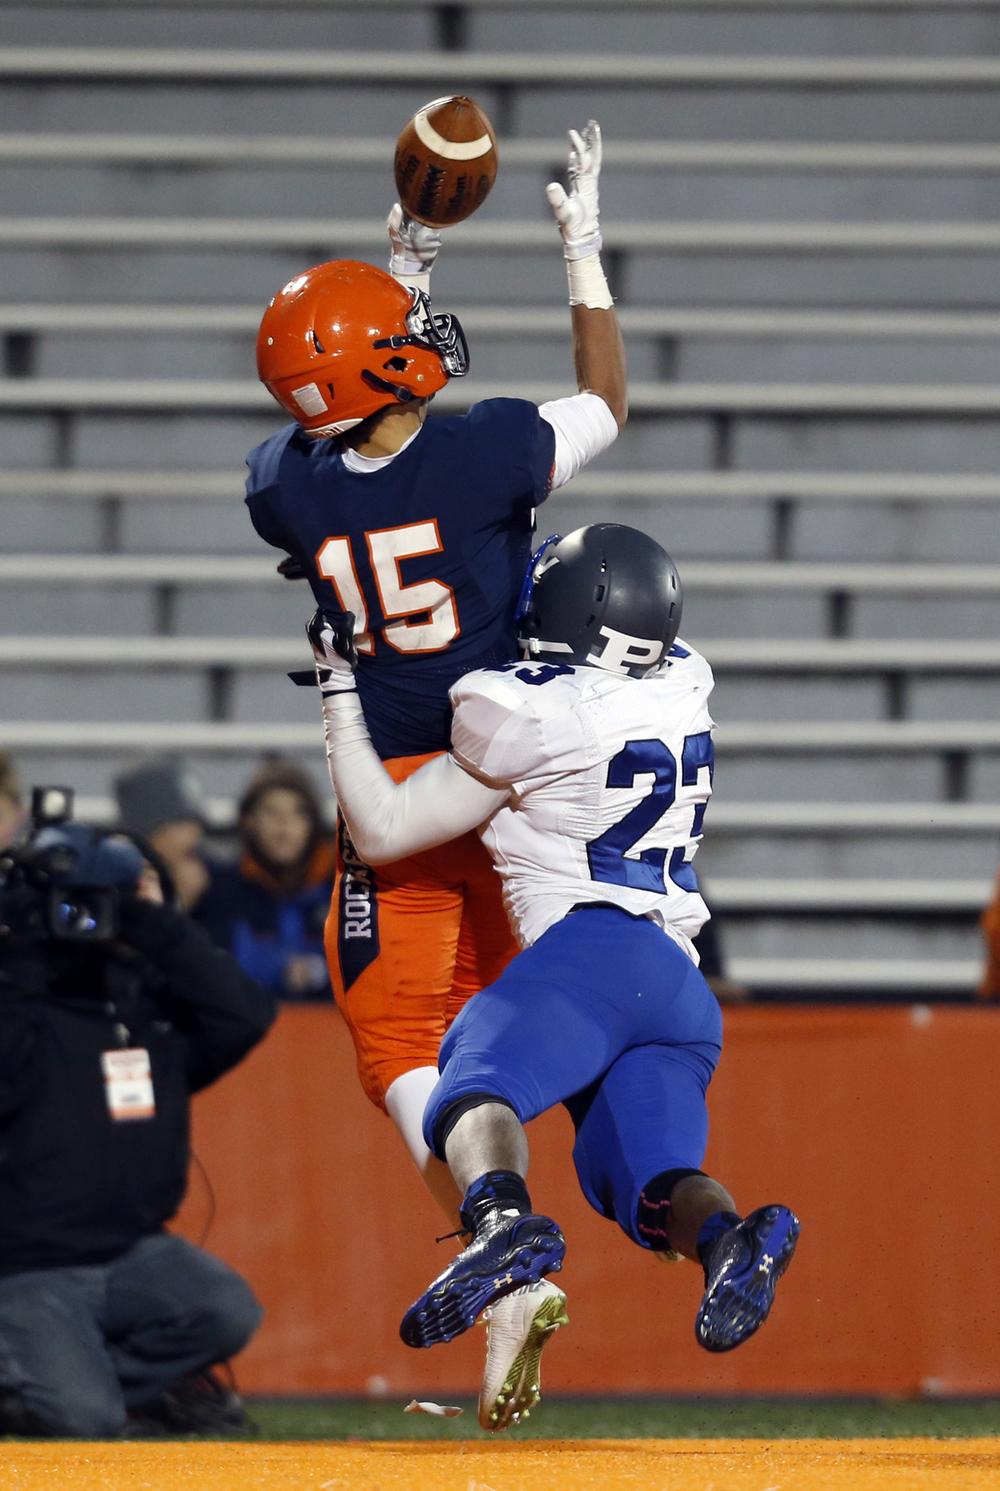 Rochester's Jeremy Bivens leaps to catch a pass in front of Chicago Phillips' Jamal Brown during the Class 4A football championship game at Memorial Stadium Friday, Nov. 28, 2014. The pass was incomplete. Ted Schurter/The State Journal-Register